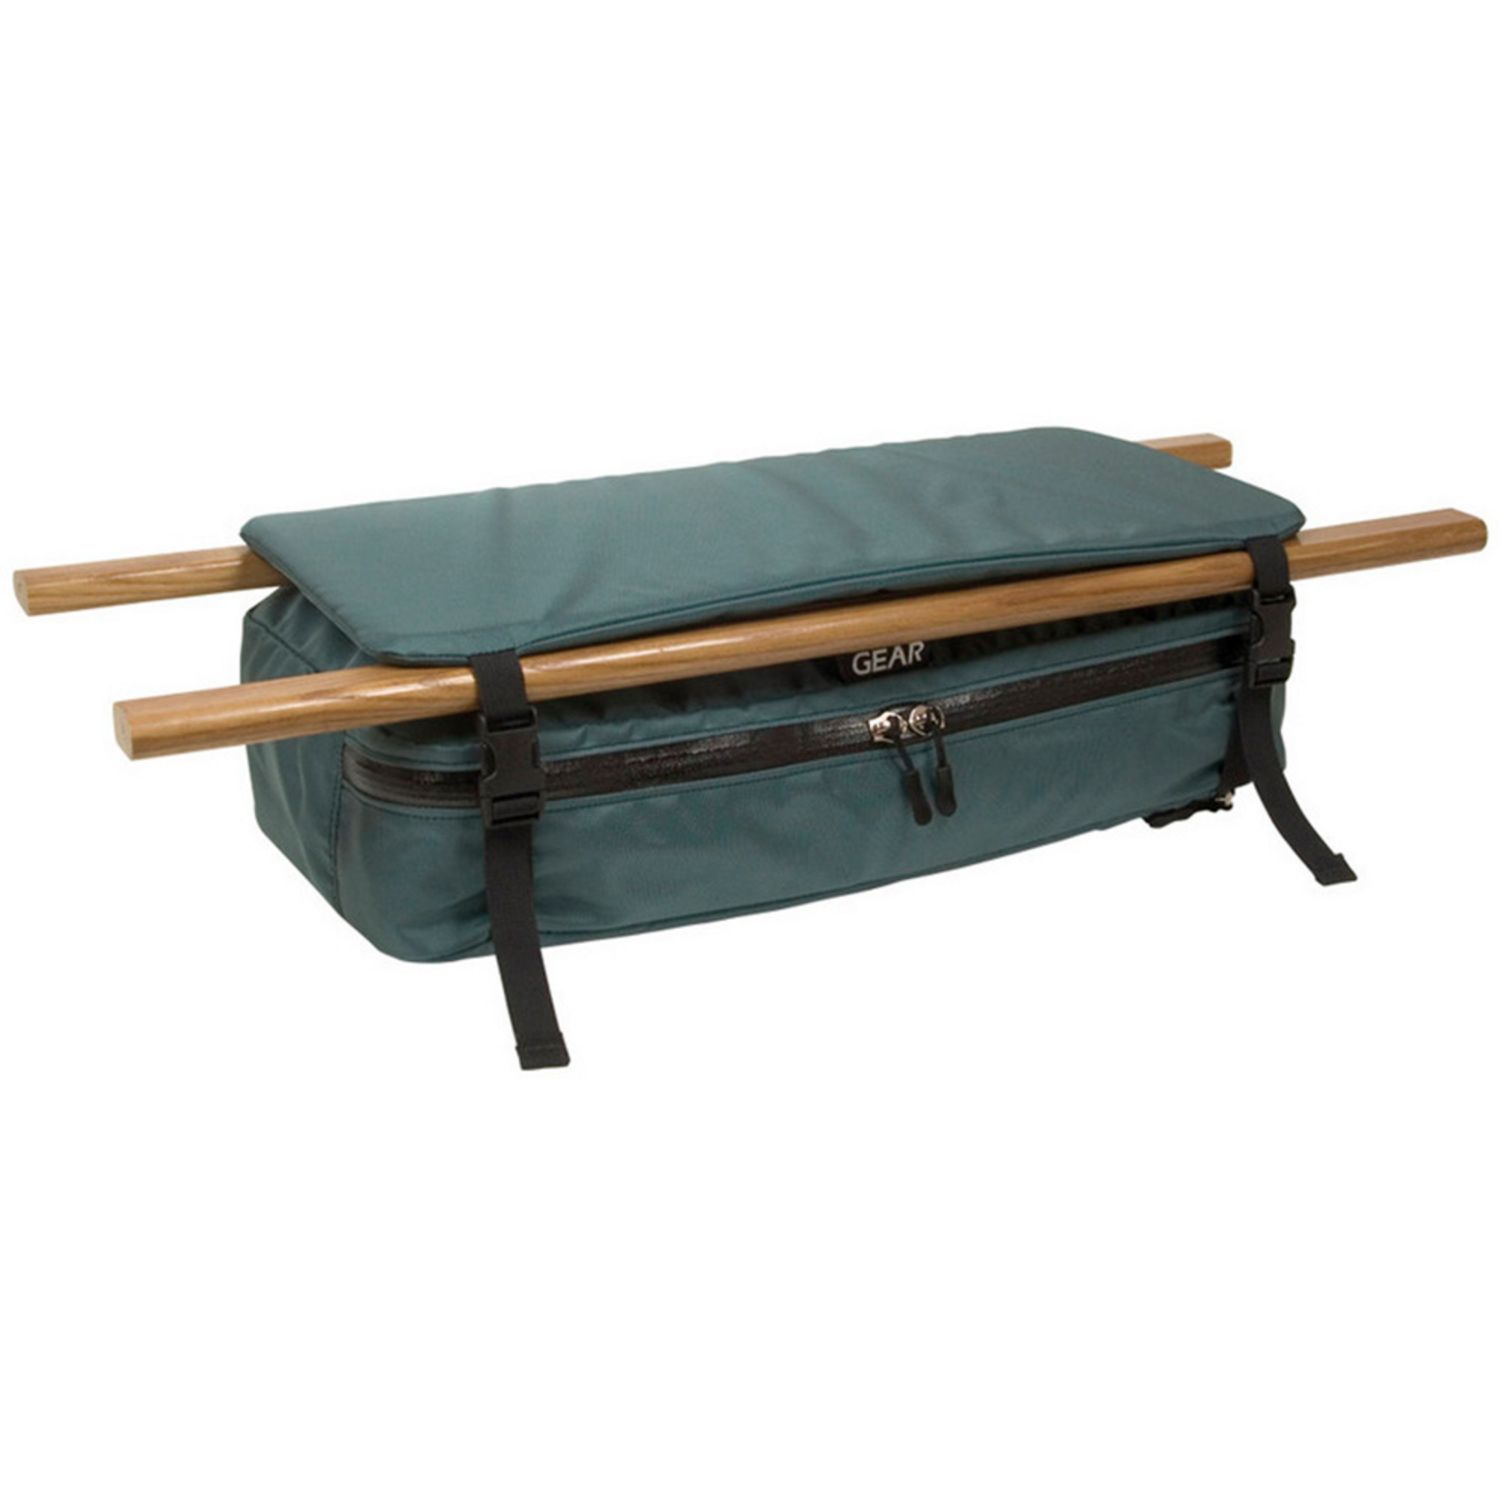 American Home Decor Catalog Padded Stowaway Seat By Granite Gear Canoe Accessories